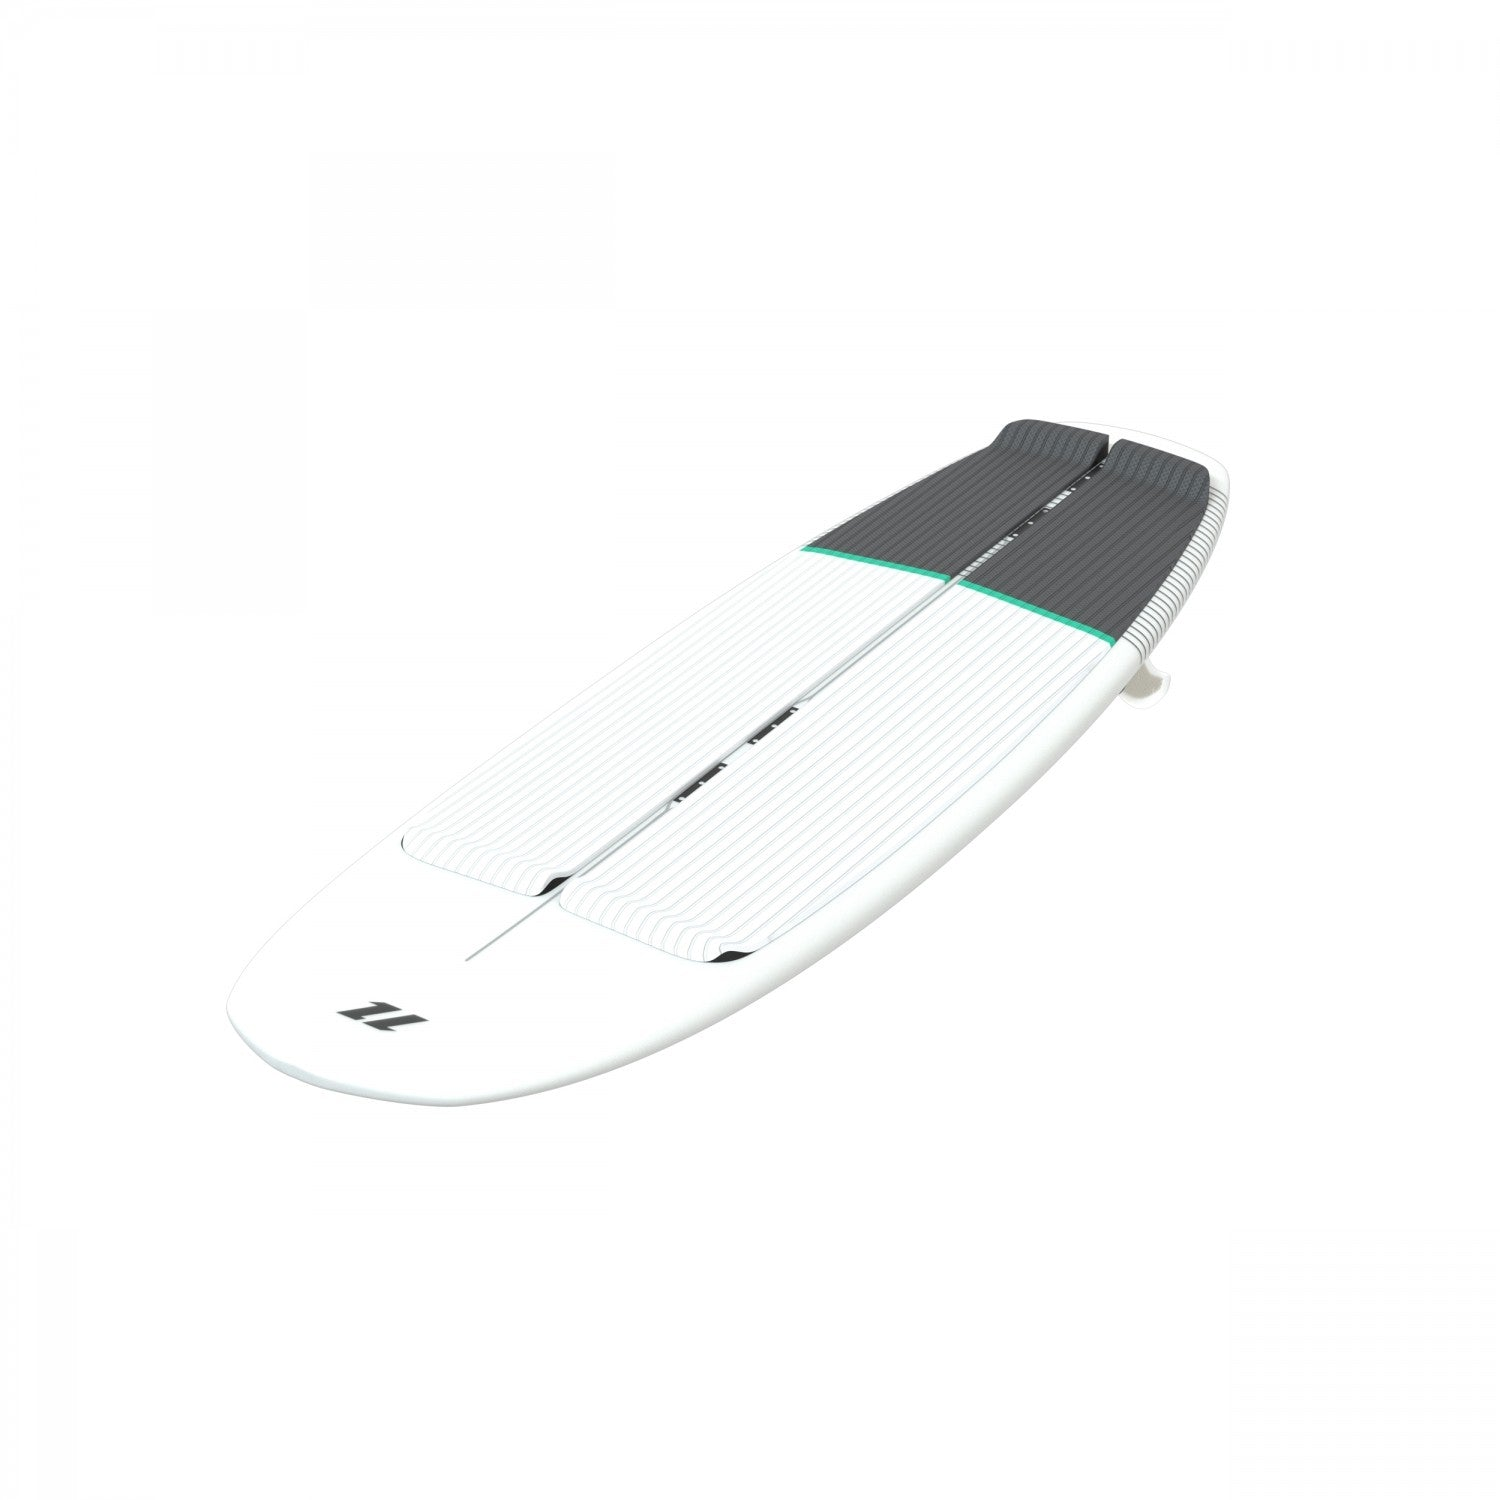 North Chase Foil / Surfboard 2020